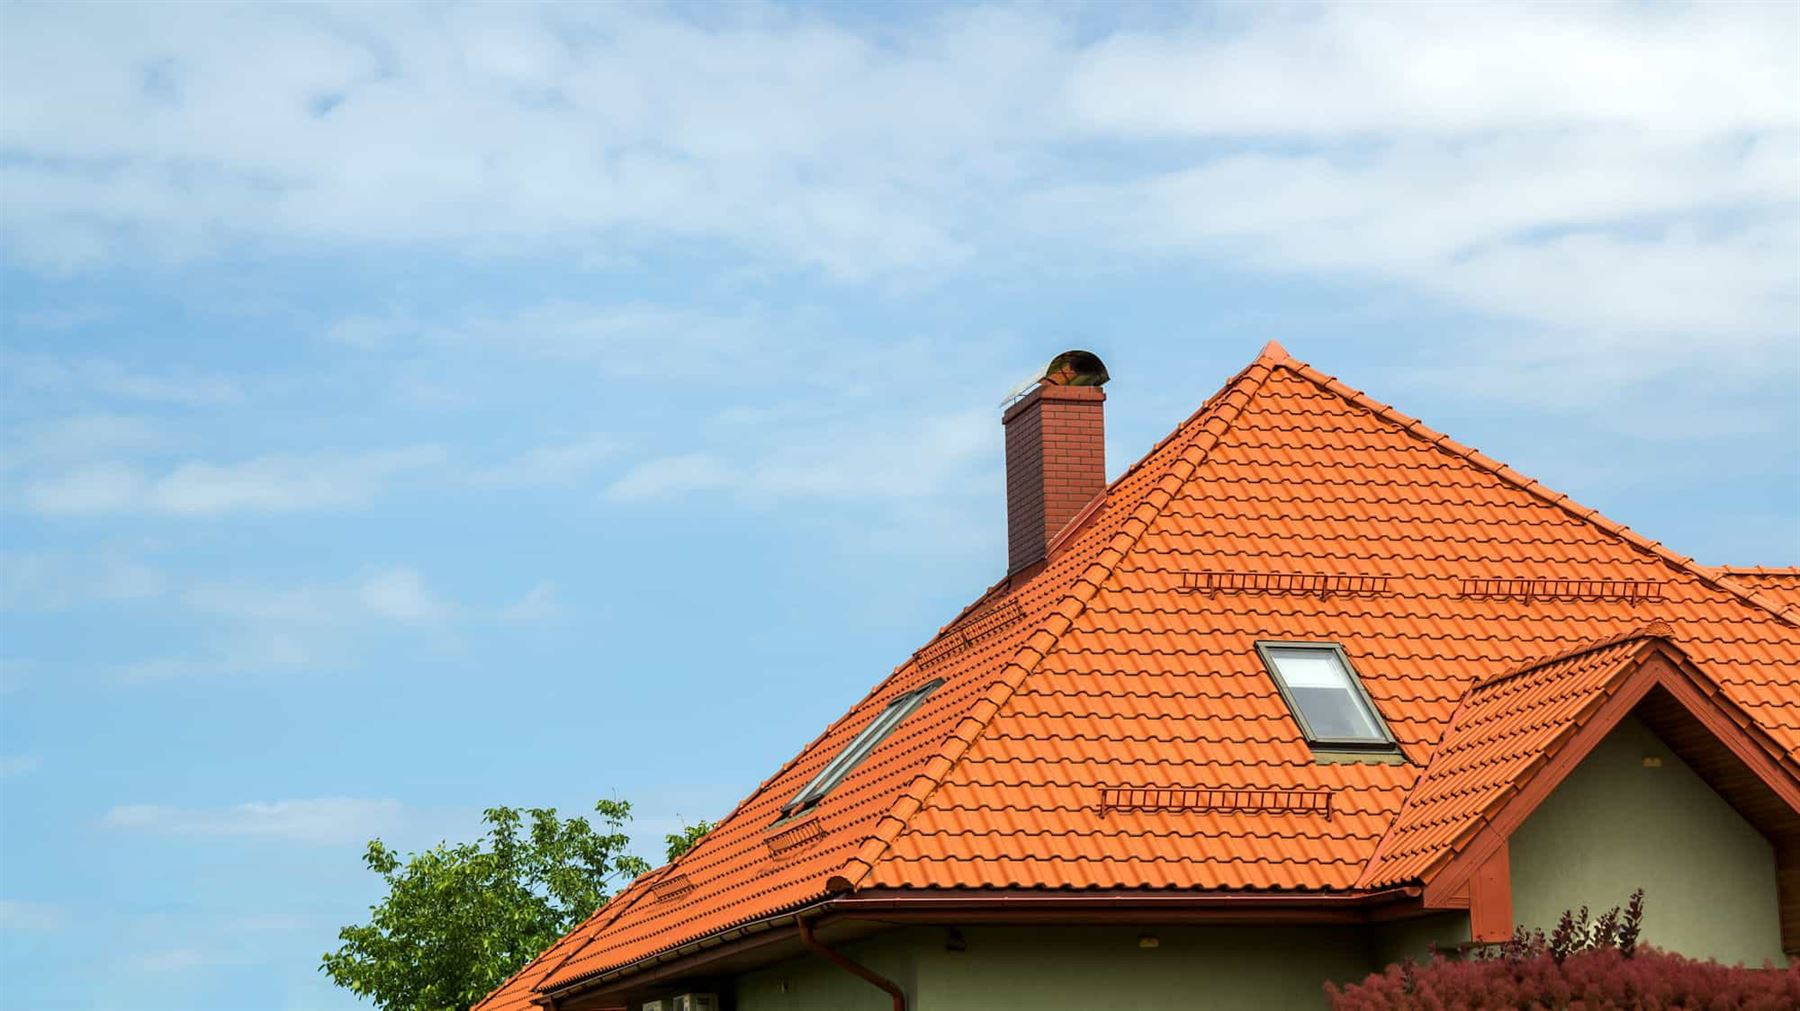 Pinnacle Roofing Professionals of Oakland